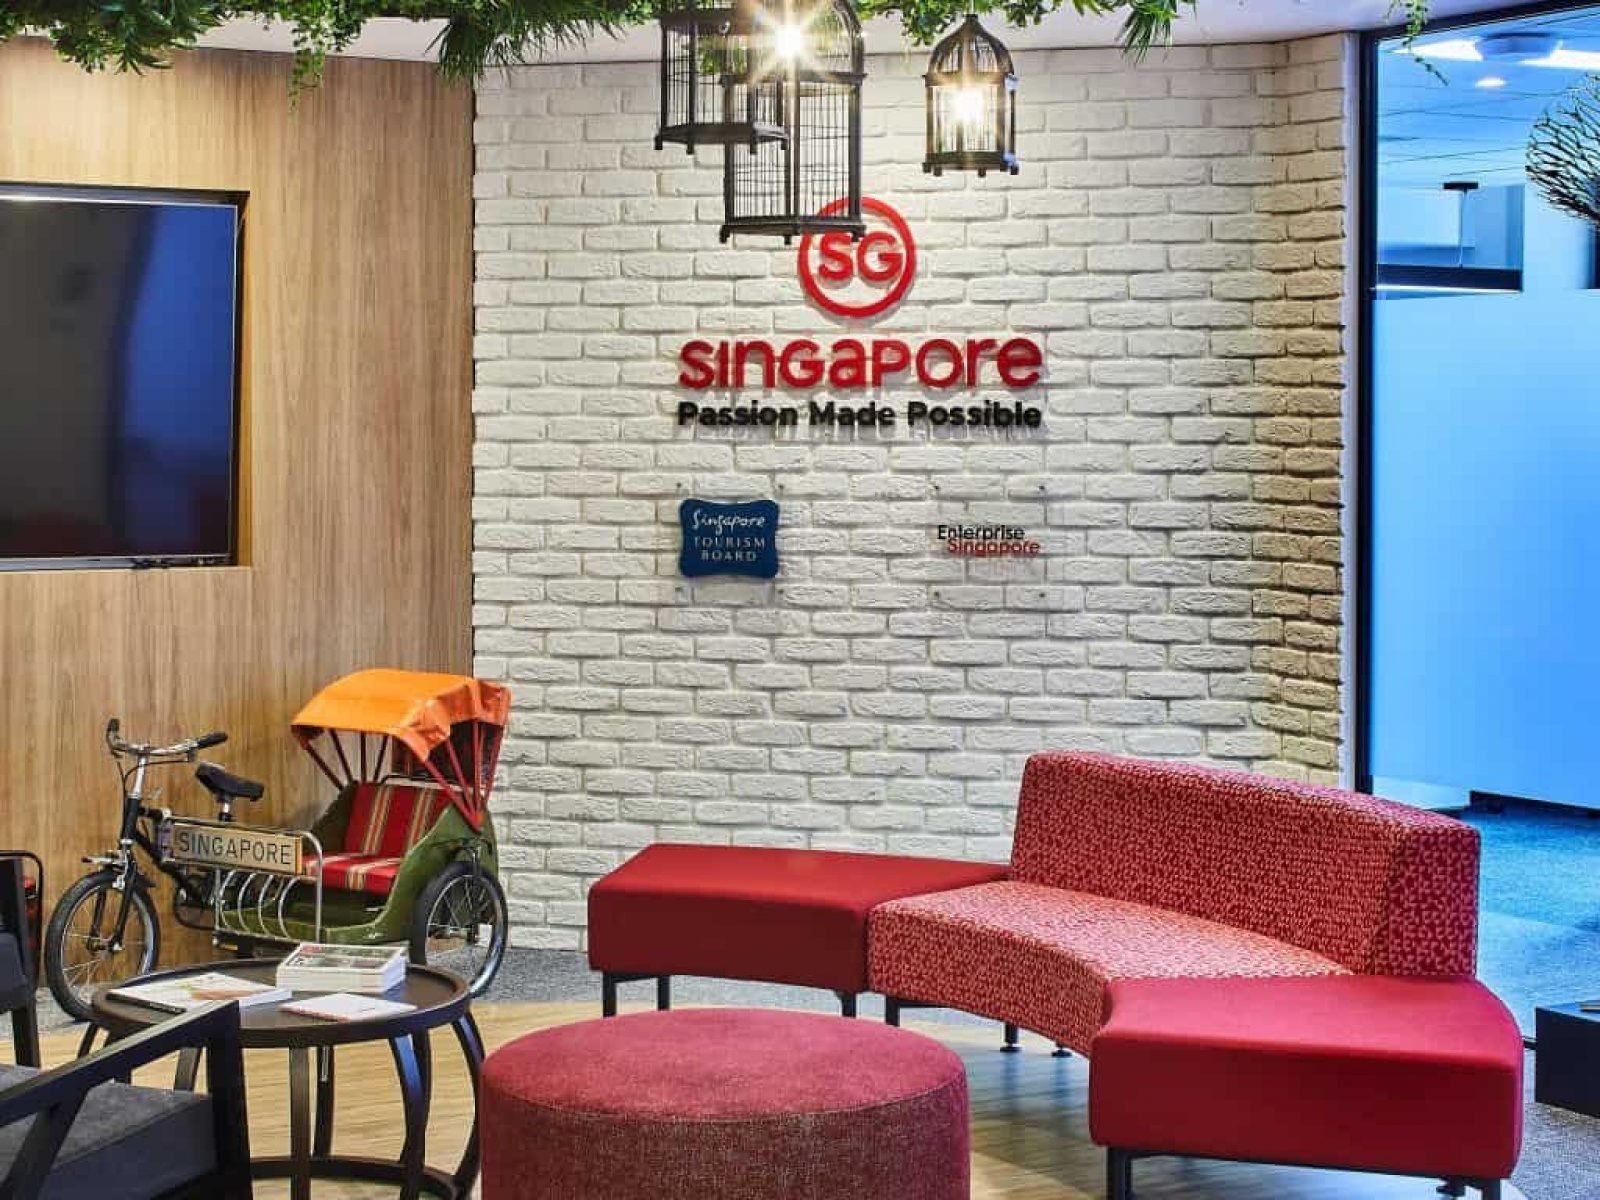 Office Fitouts Sydney, Singapore Tourism | Contour Interiors